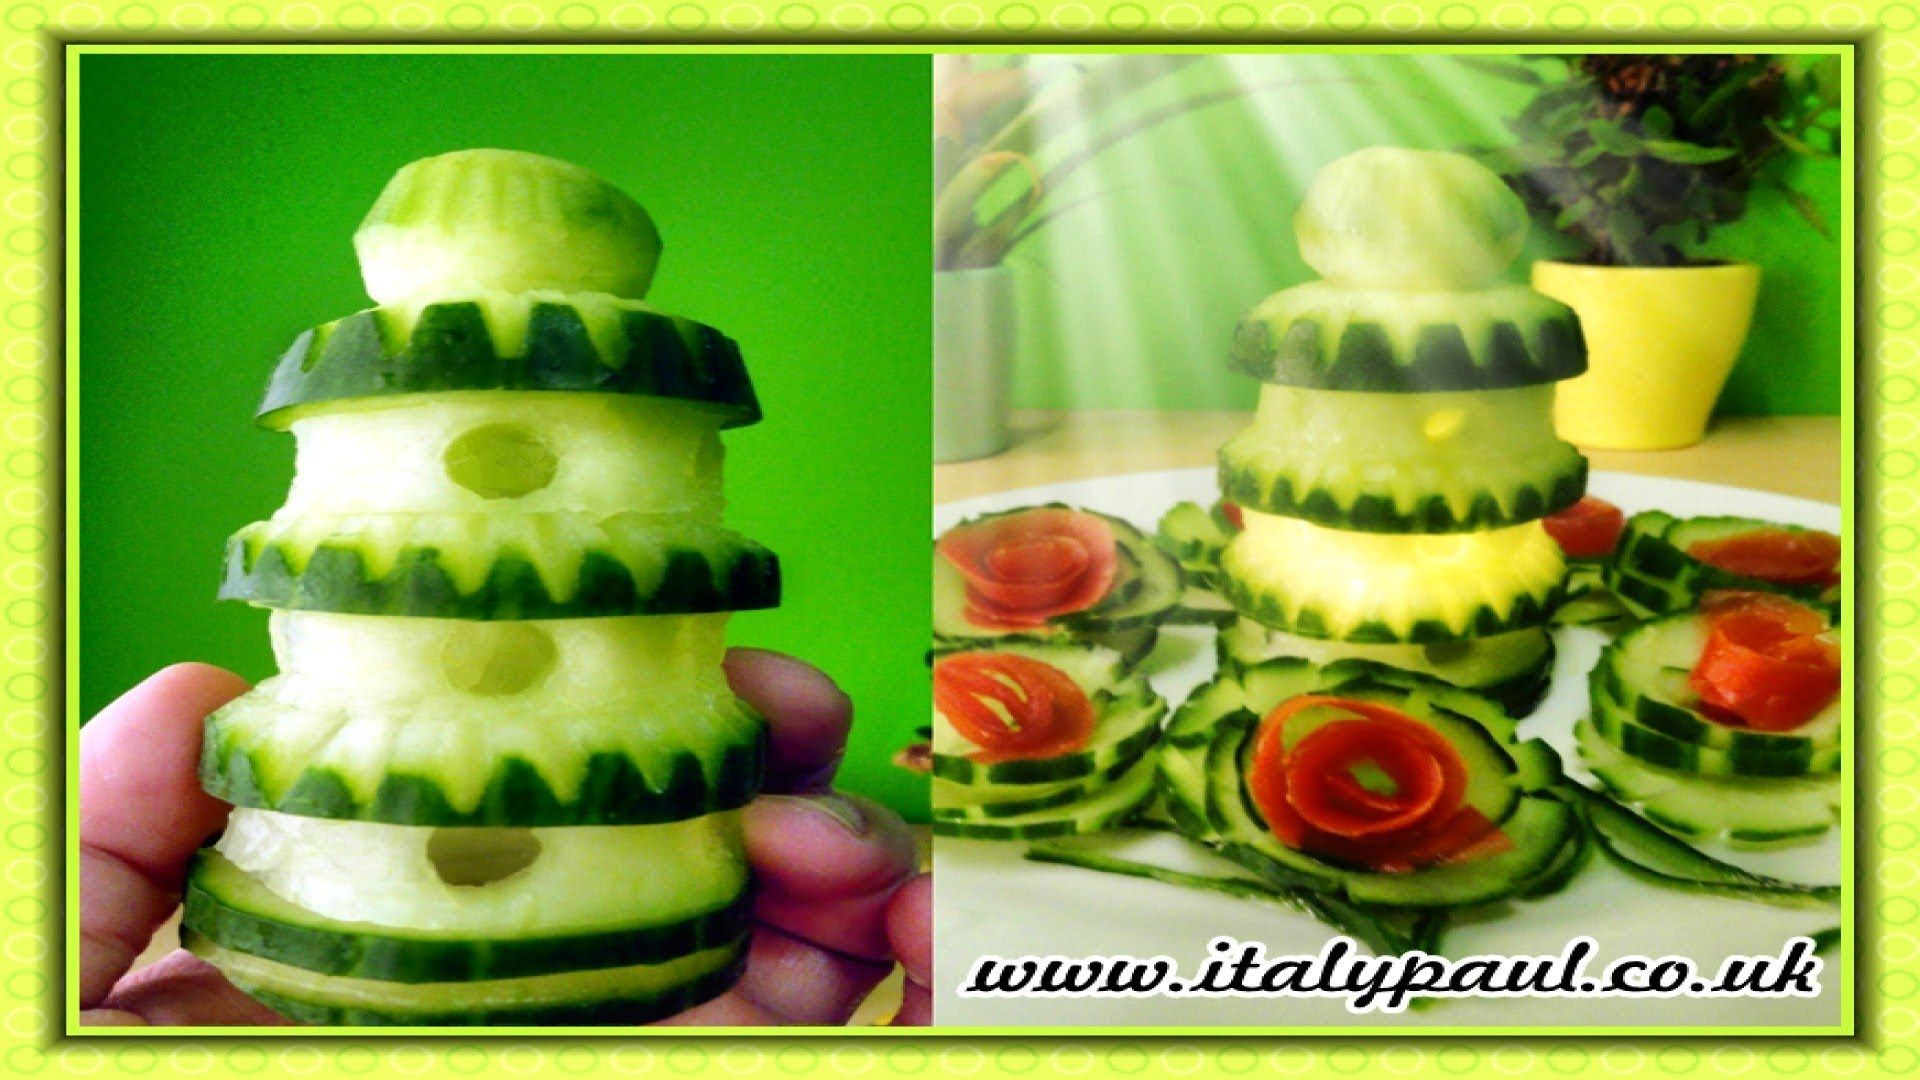 Vegetable carving step by step procedure - Art In Cucumber Show Vegetable Carving Tower Garnish